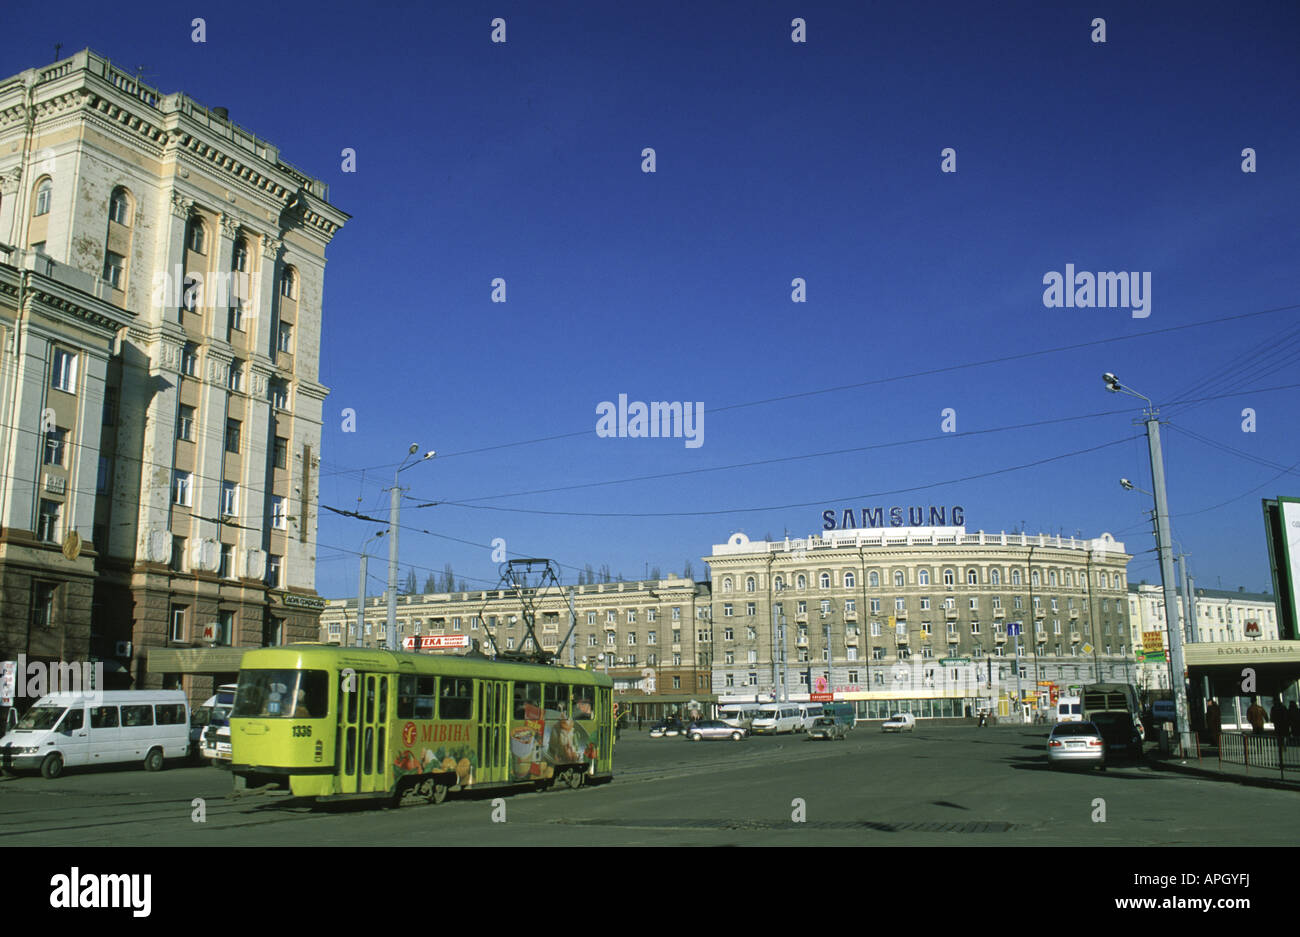 City centre with trams Dnepropetrovsk Ukraine - Stock Image